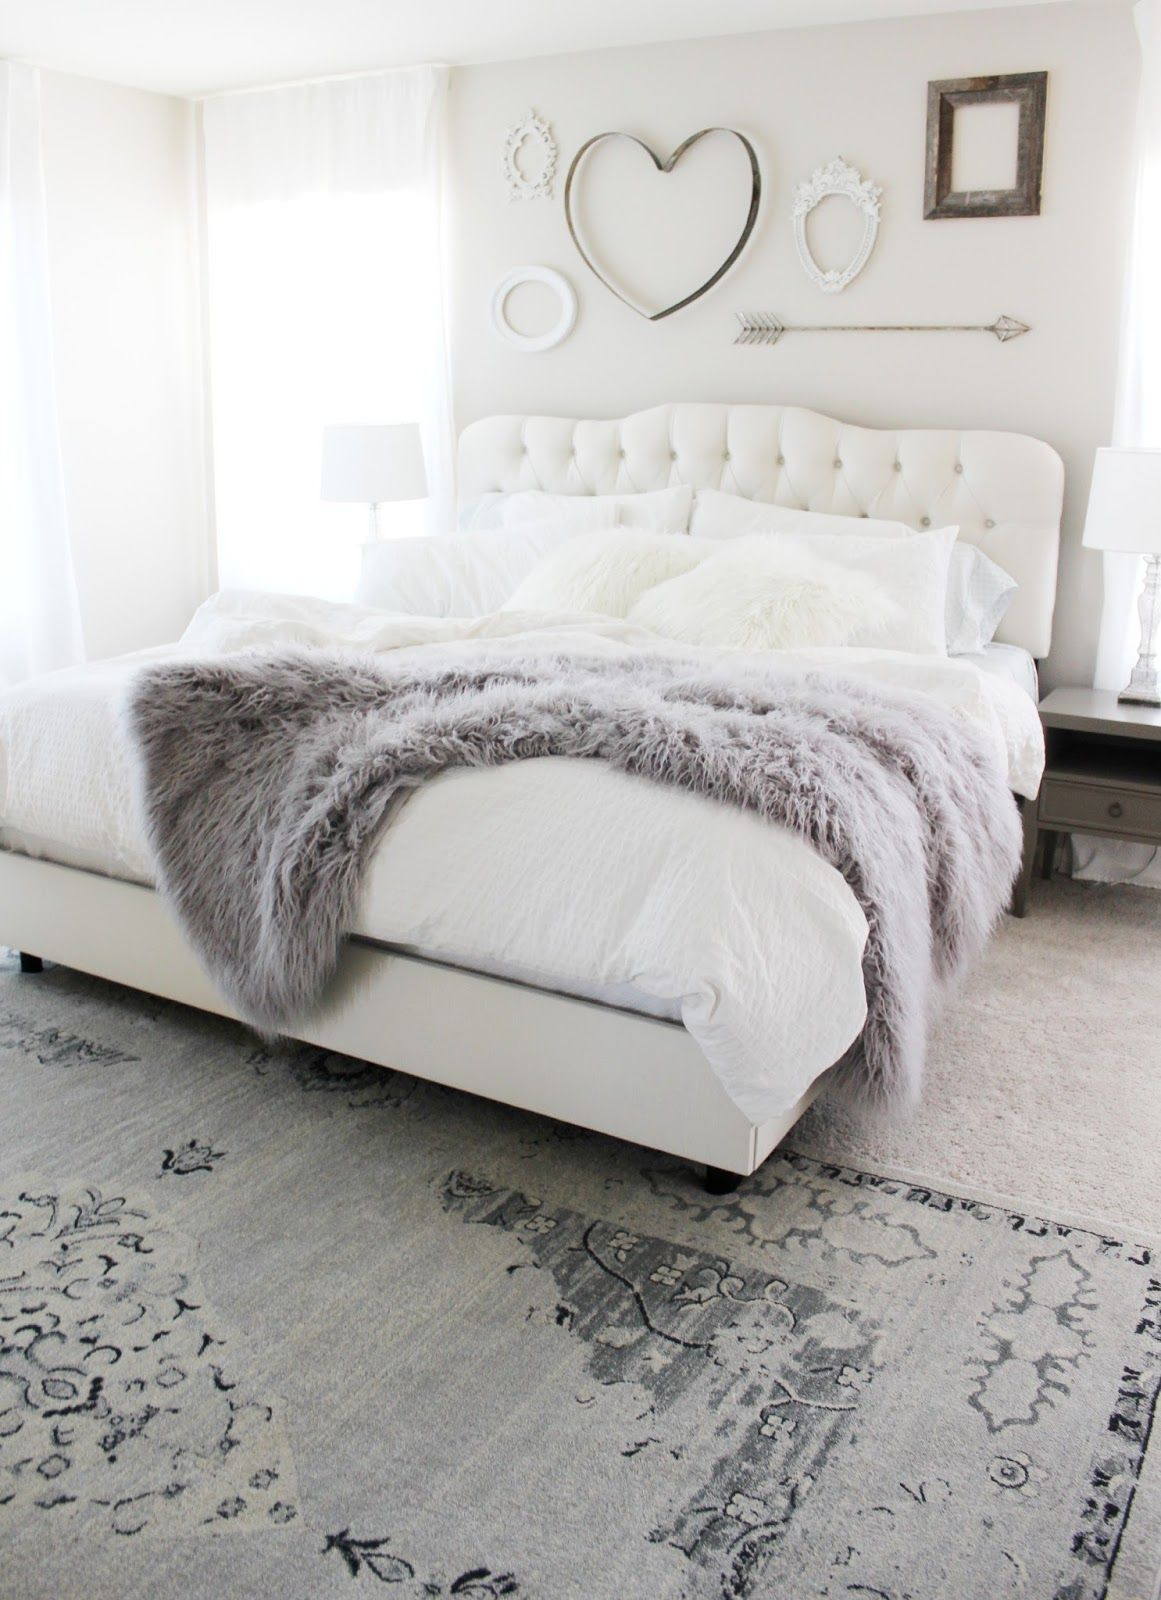 Bedroom colors grey and white - Aubrey Kinch The Blog Master Bedroom Reveal Gray Bedroombedroom Inspofur Blanket Bedroomwhite Decor